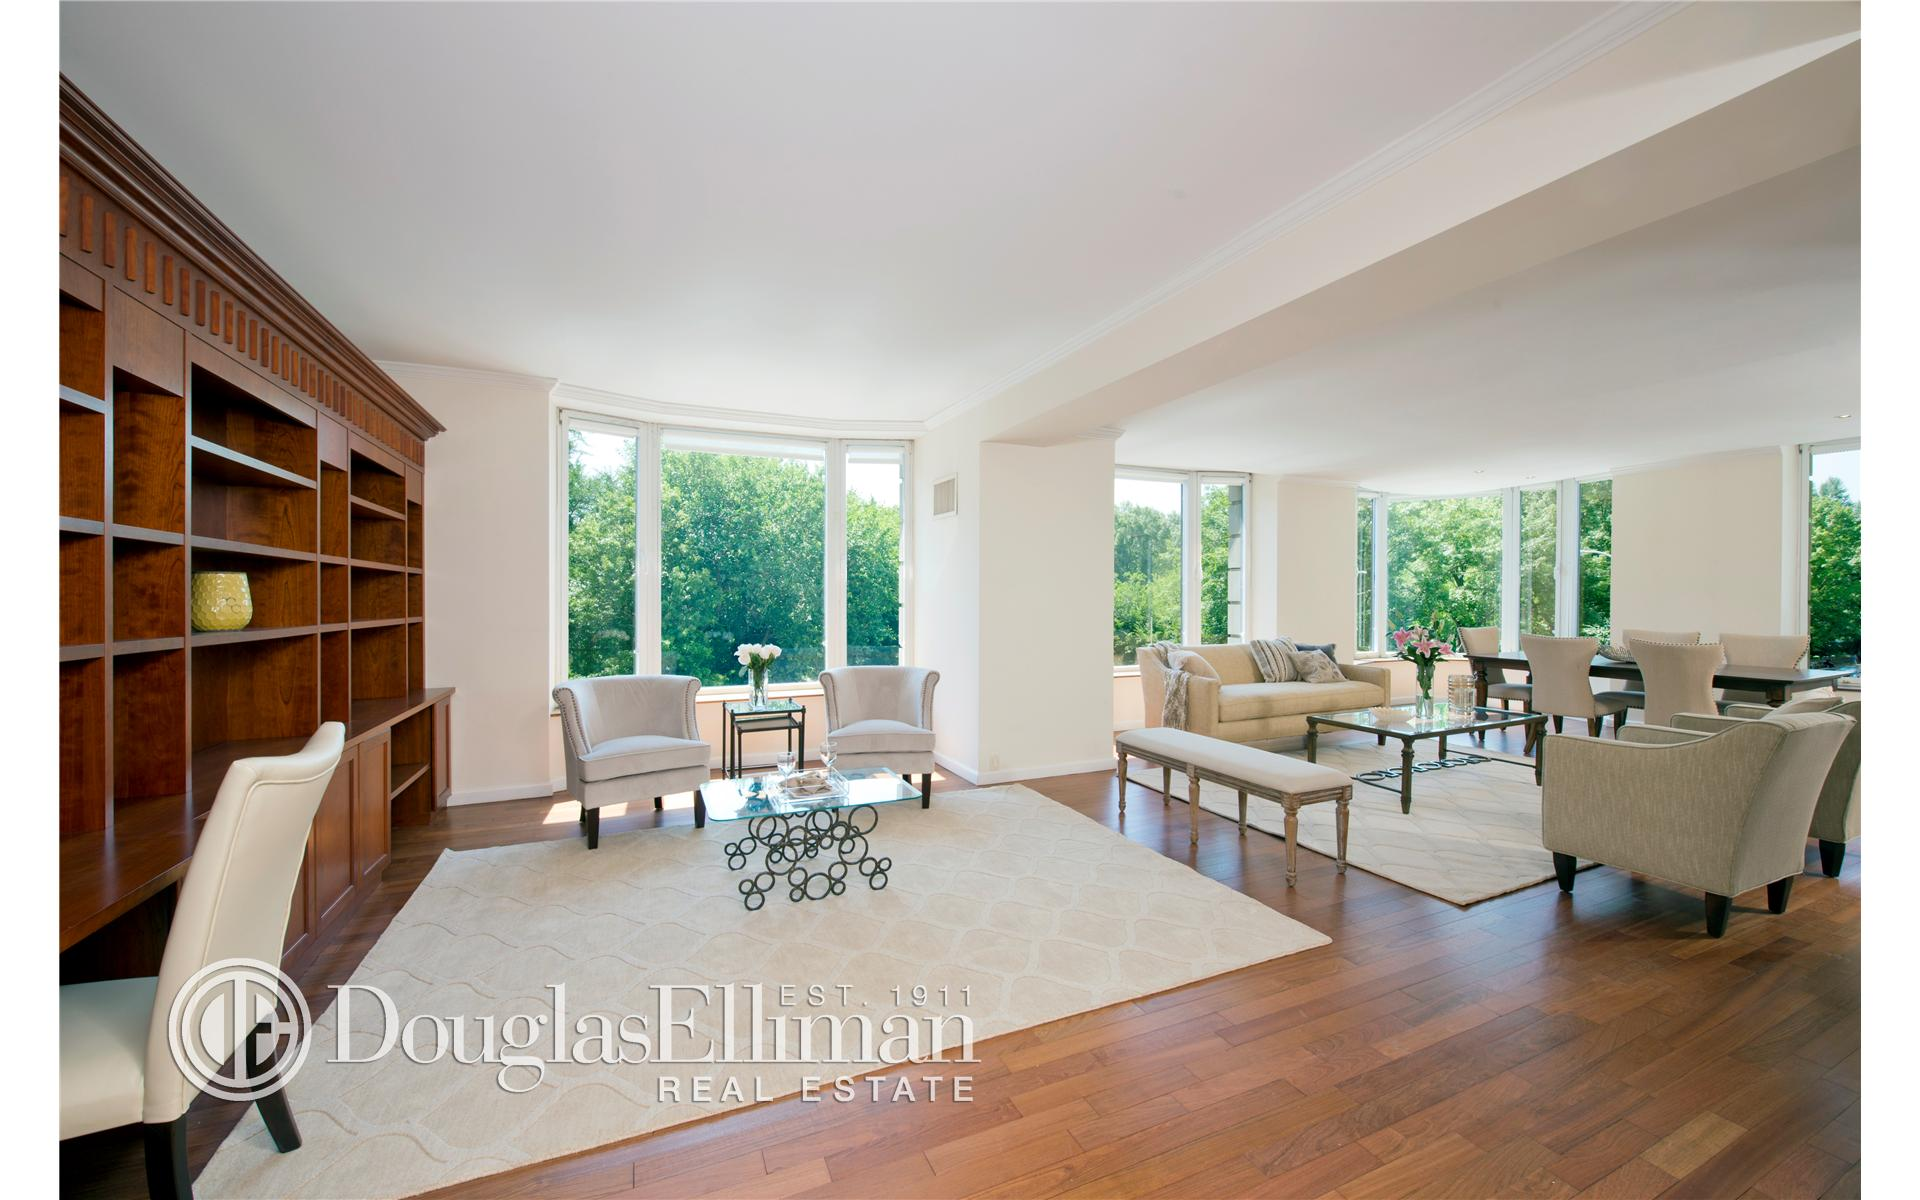 Condominium for Sale at 279 CPW, 279 Cpw, 279 Central Park West New York, New York 10024 United States